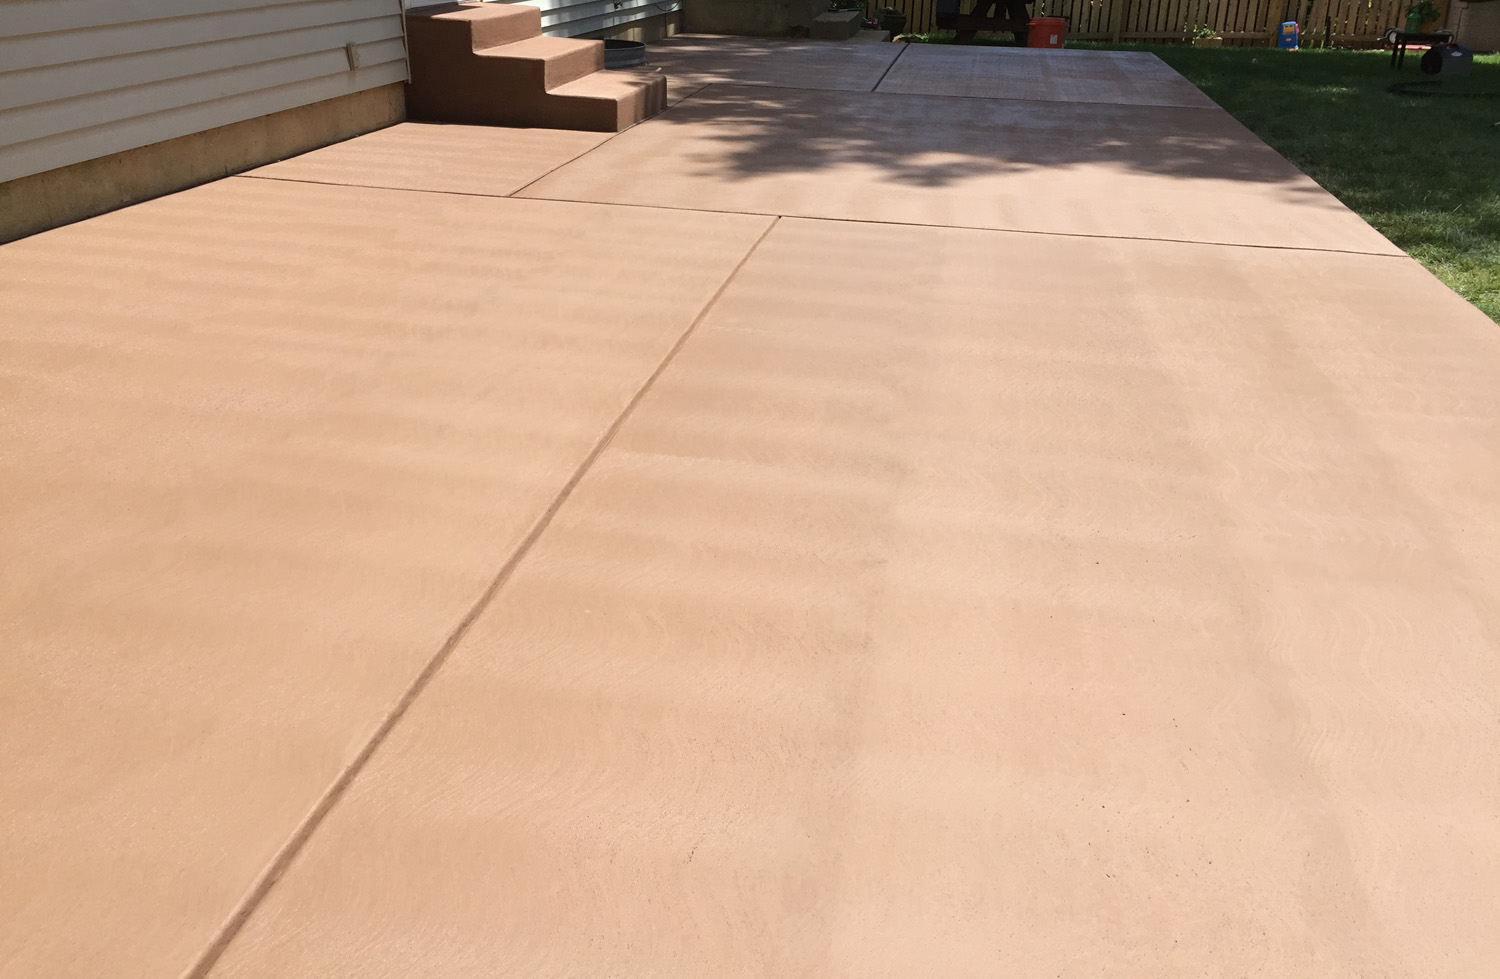 This is a colored concrete patio, using SGS Integral color #417. This project also included a new set of steps, which were poured separate. The consistency of SGS colors make them ideal for this type of project.